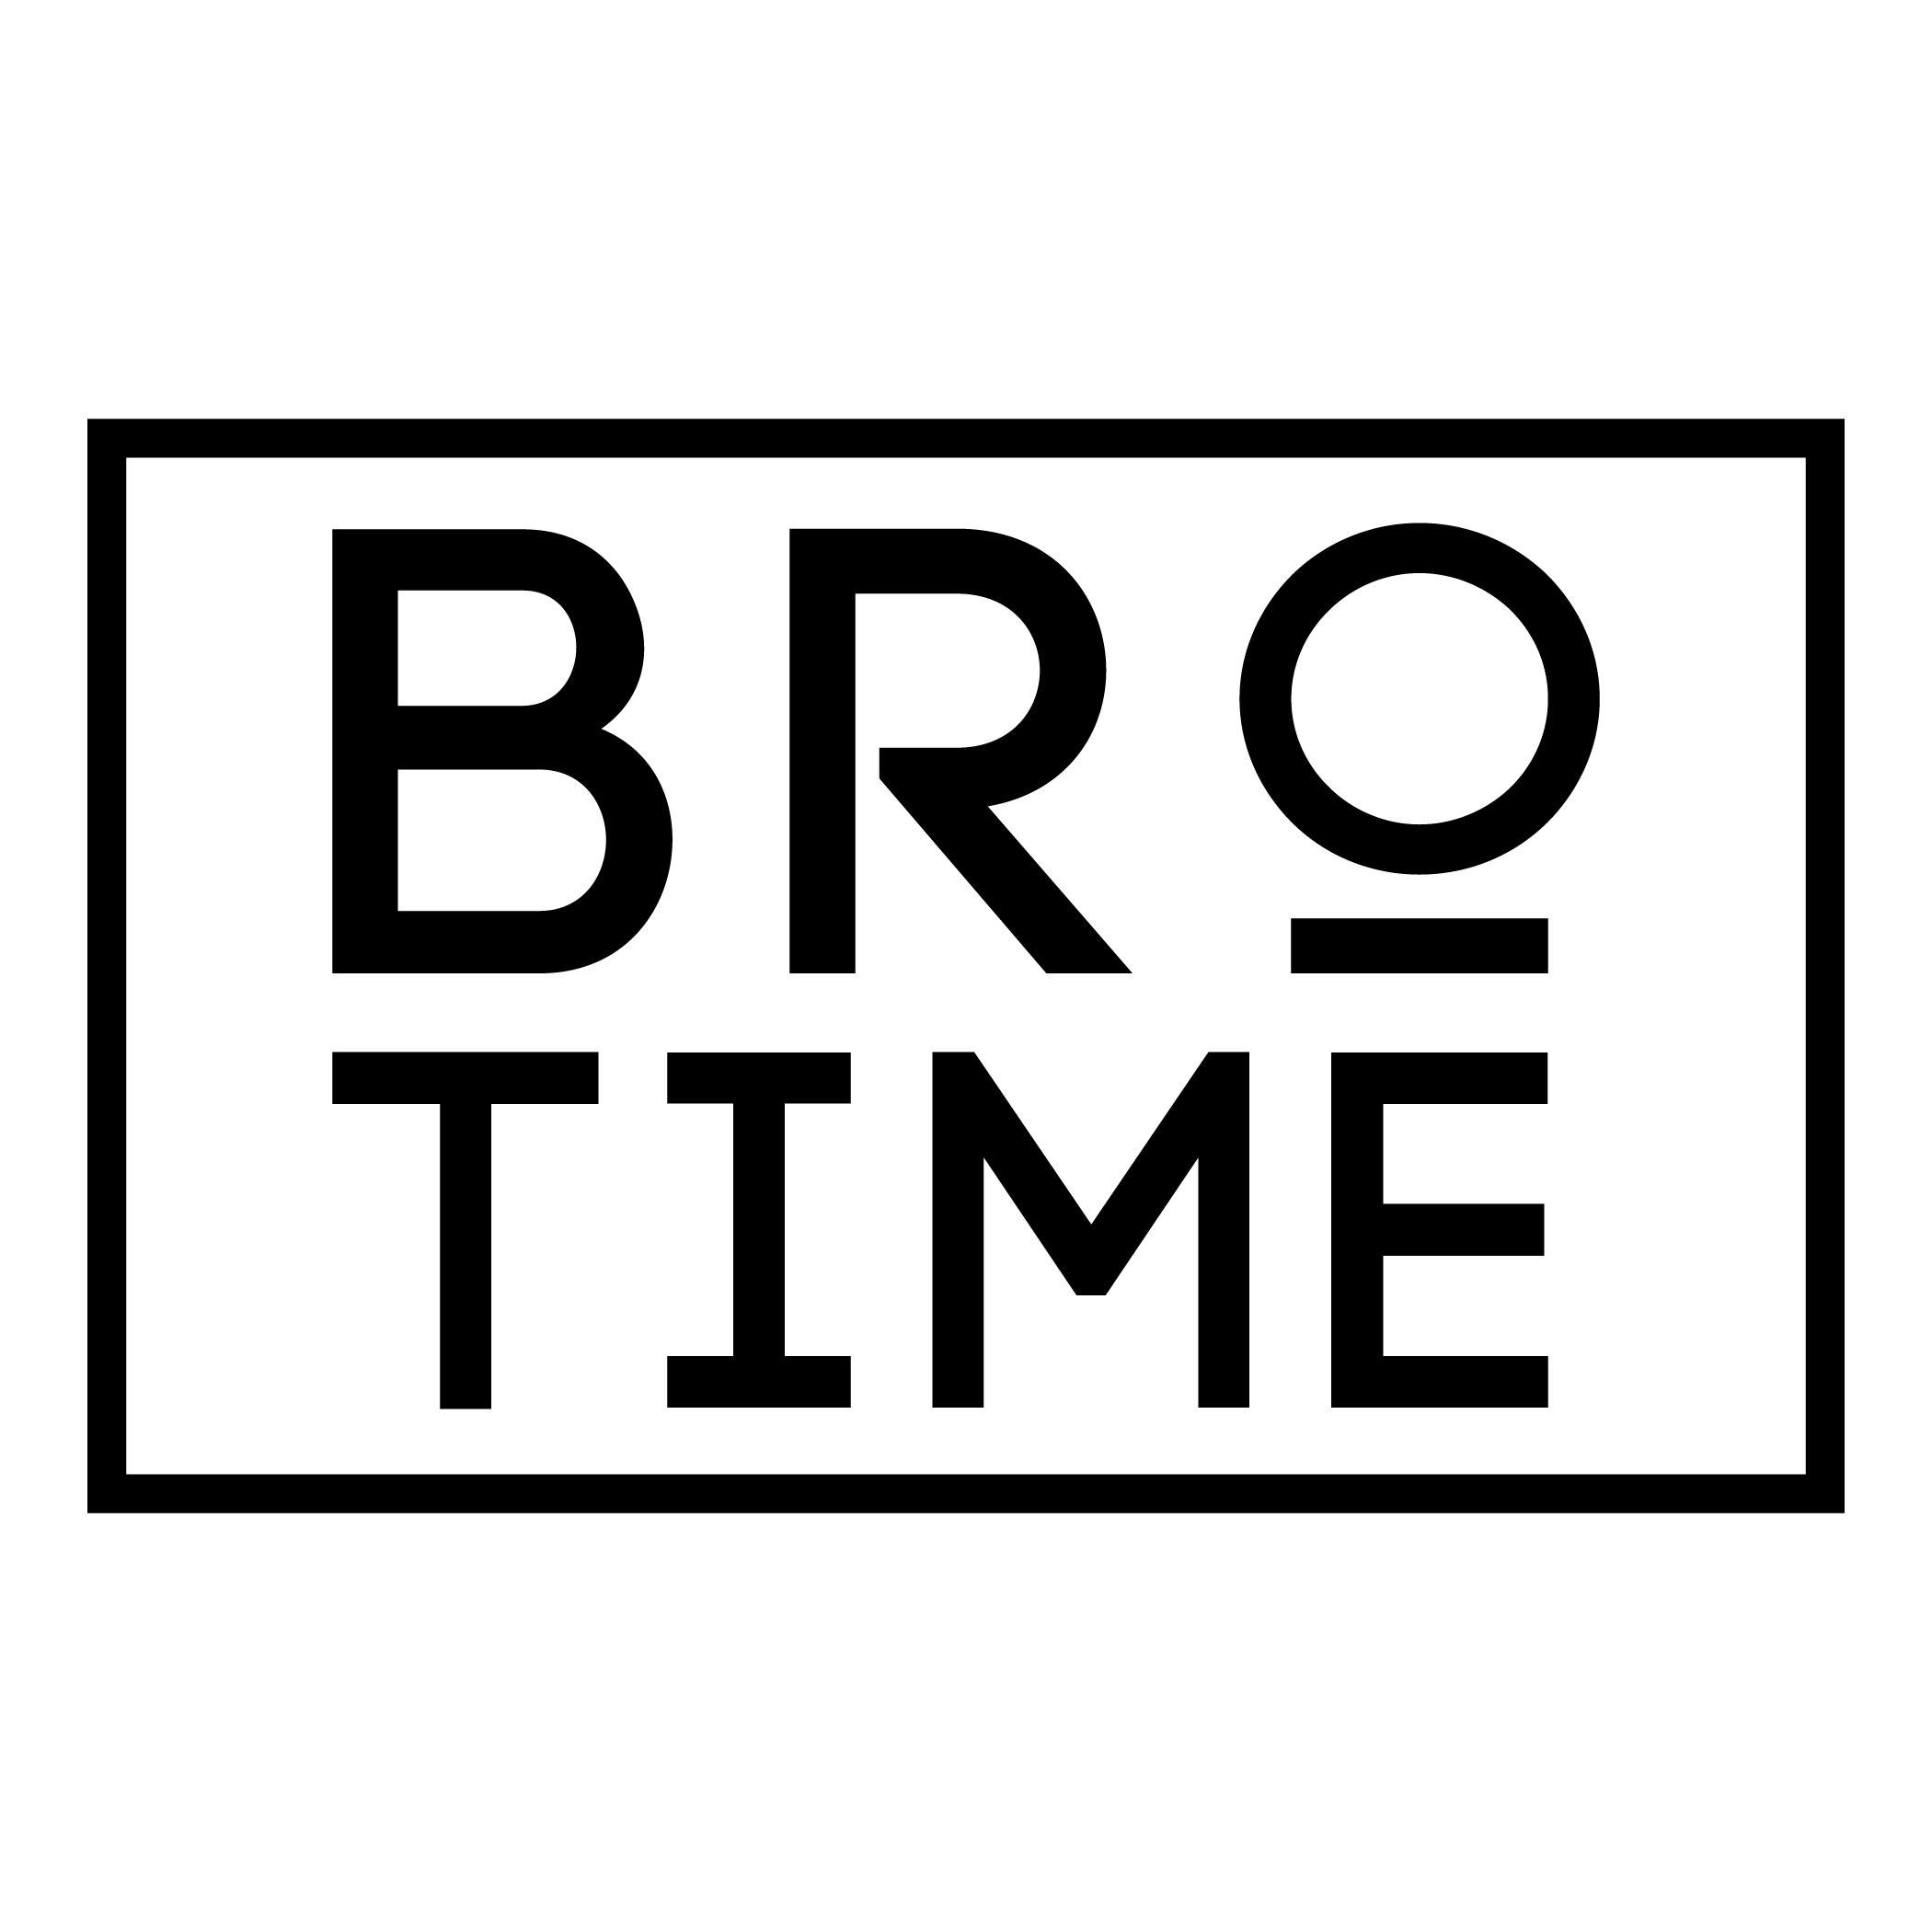 Guy's Ministry (Bro-Time) 2017 | First Baptist Church Leesburg